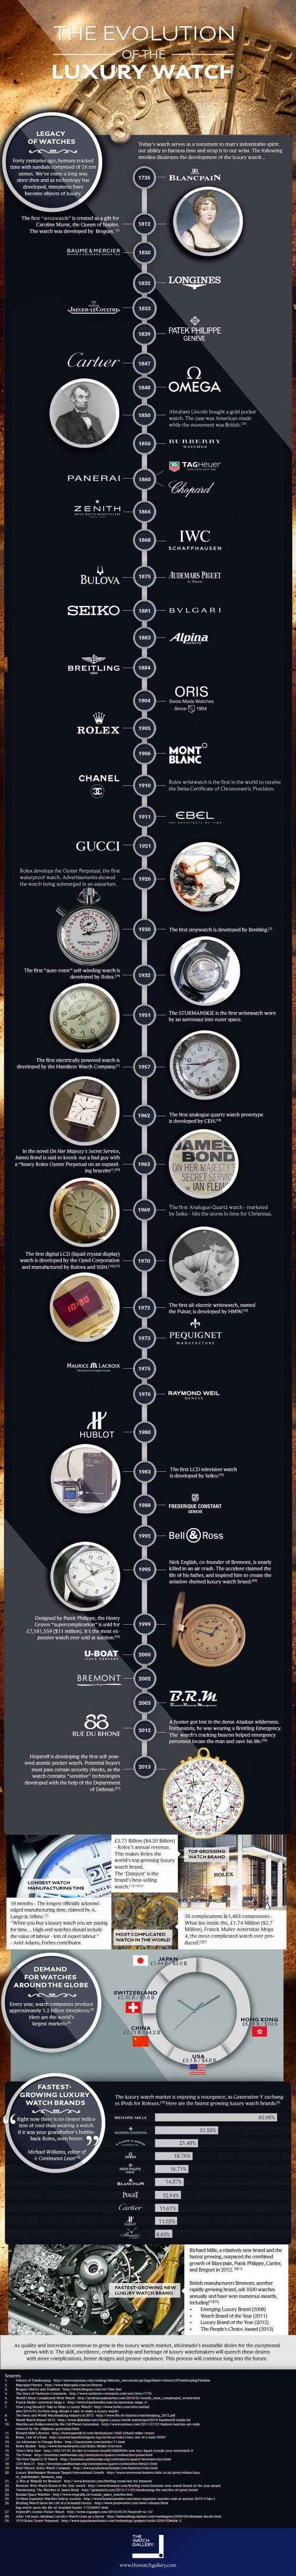 Want to see a chronological list of the history of luxury watches? Check out our infographic.